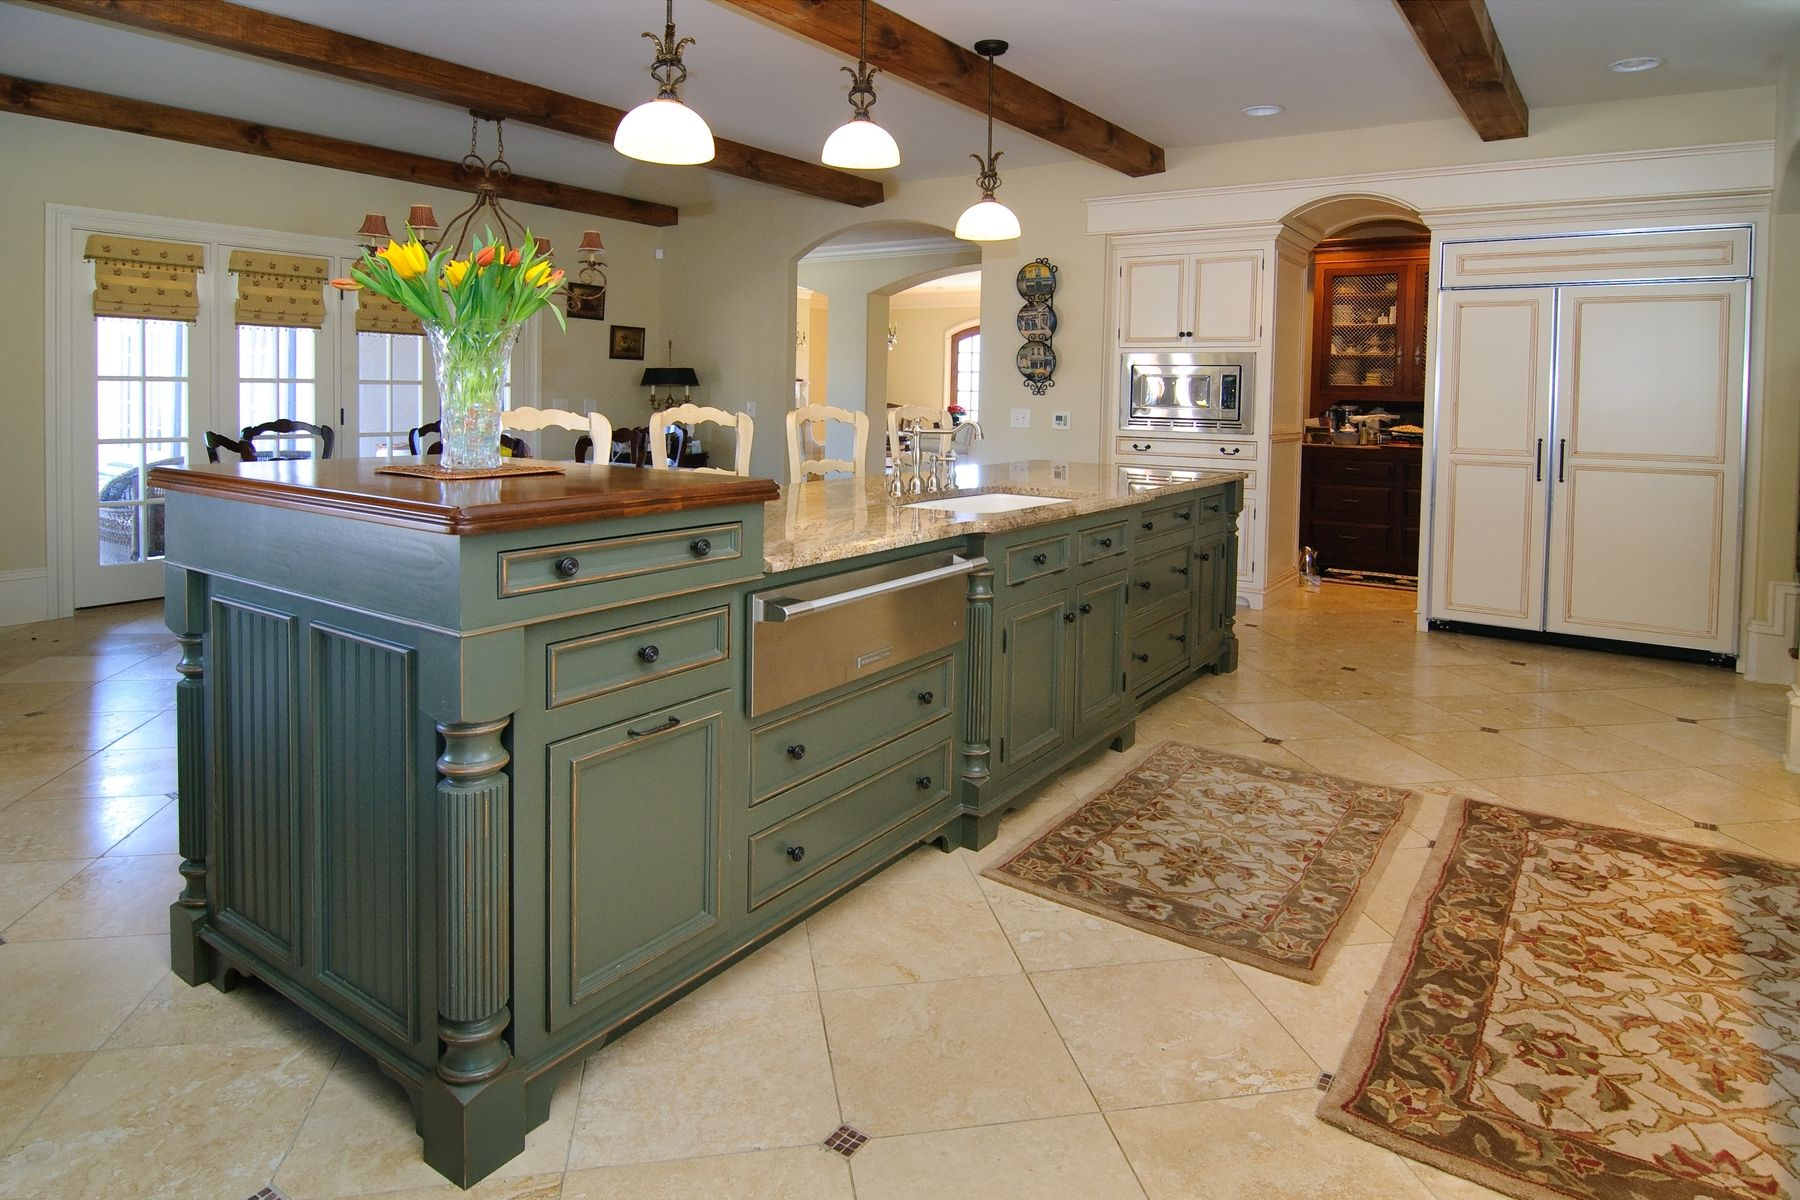 Be peculiar purchase custom kitchen islands for sale